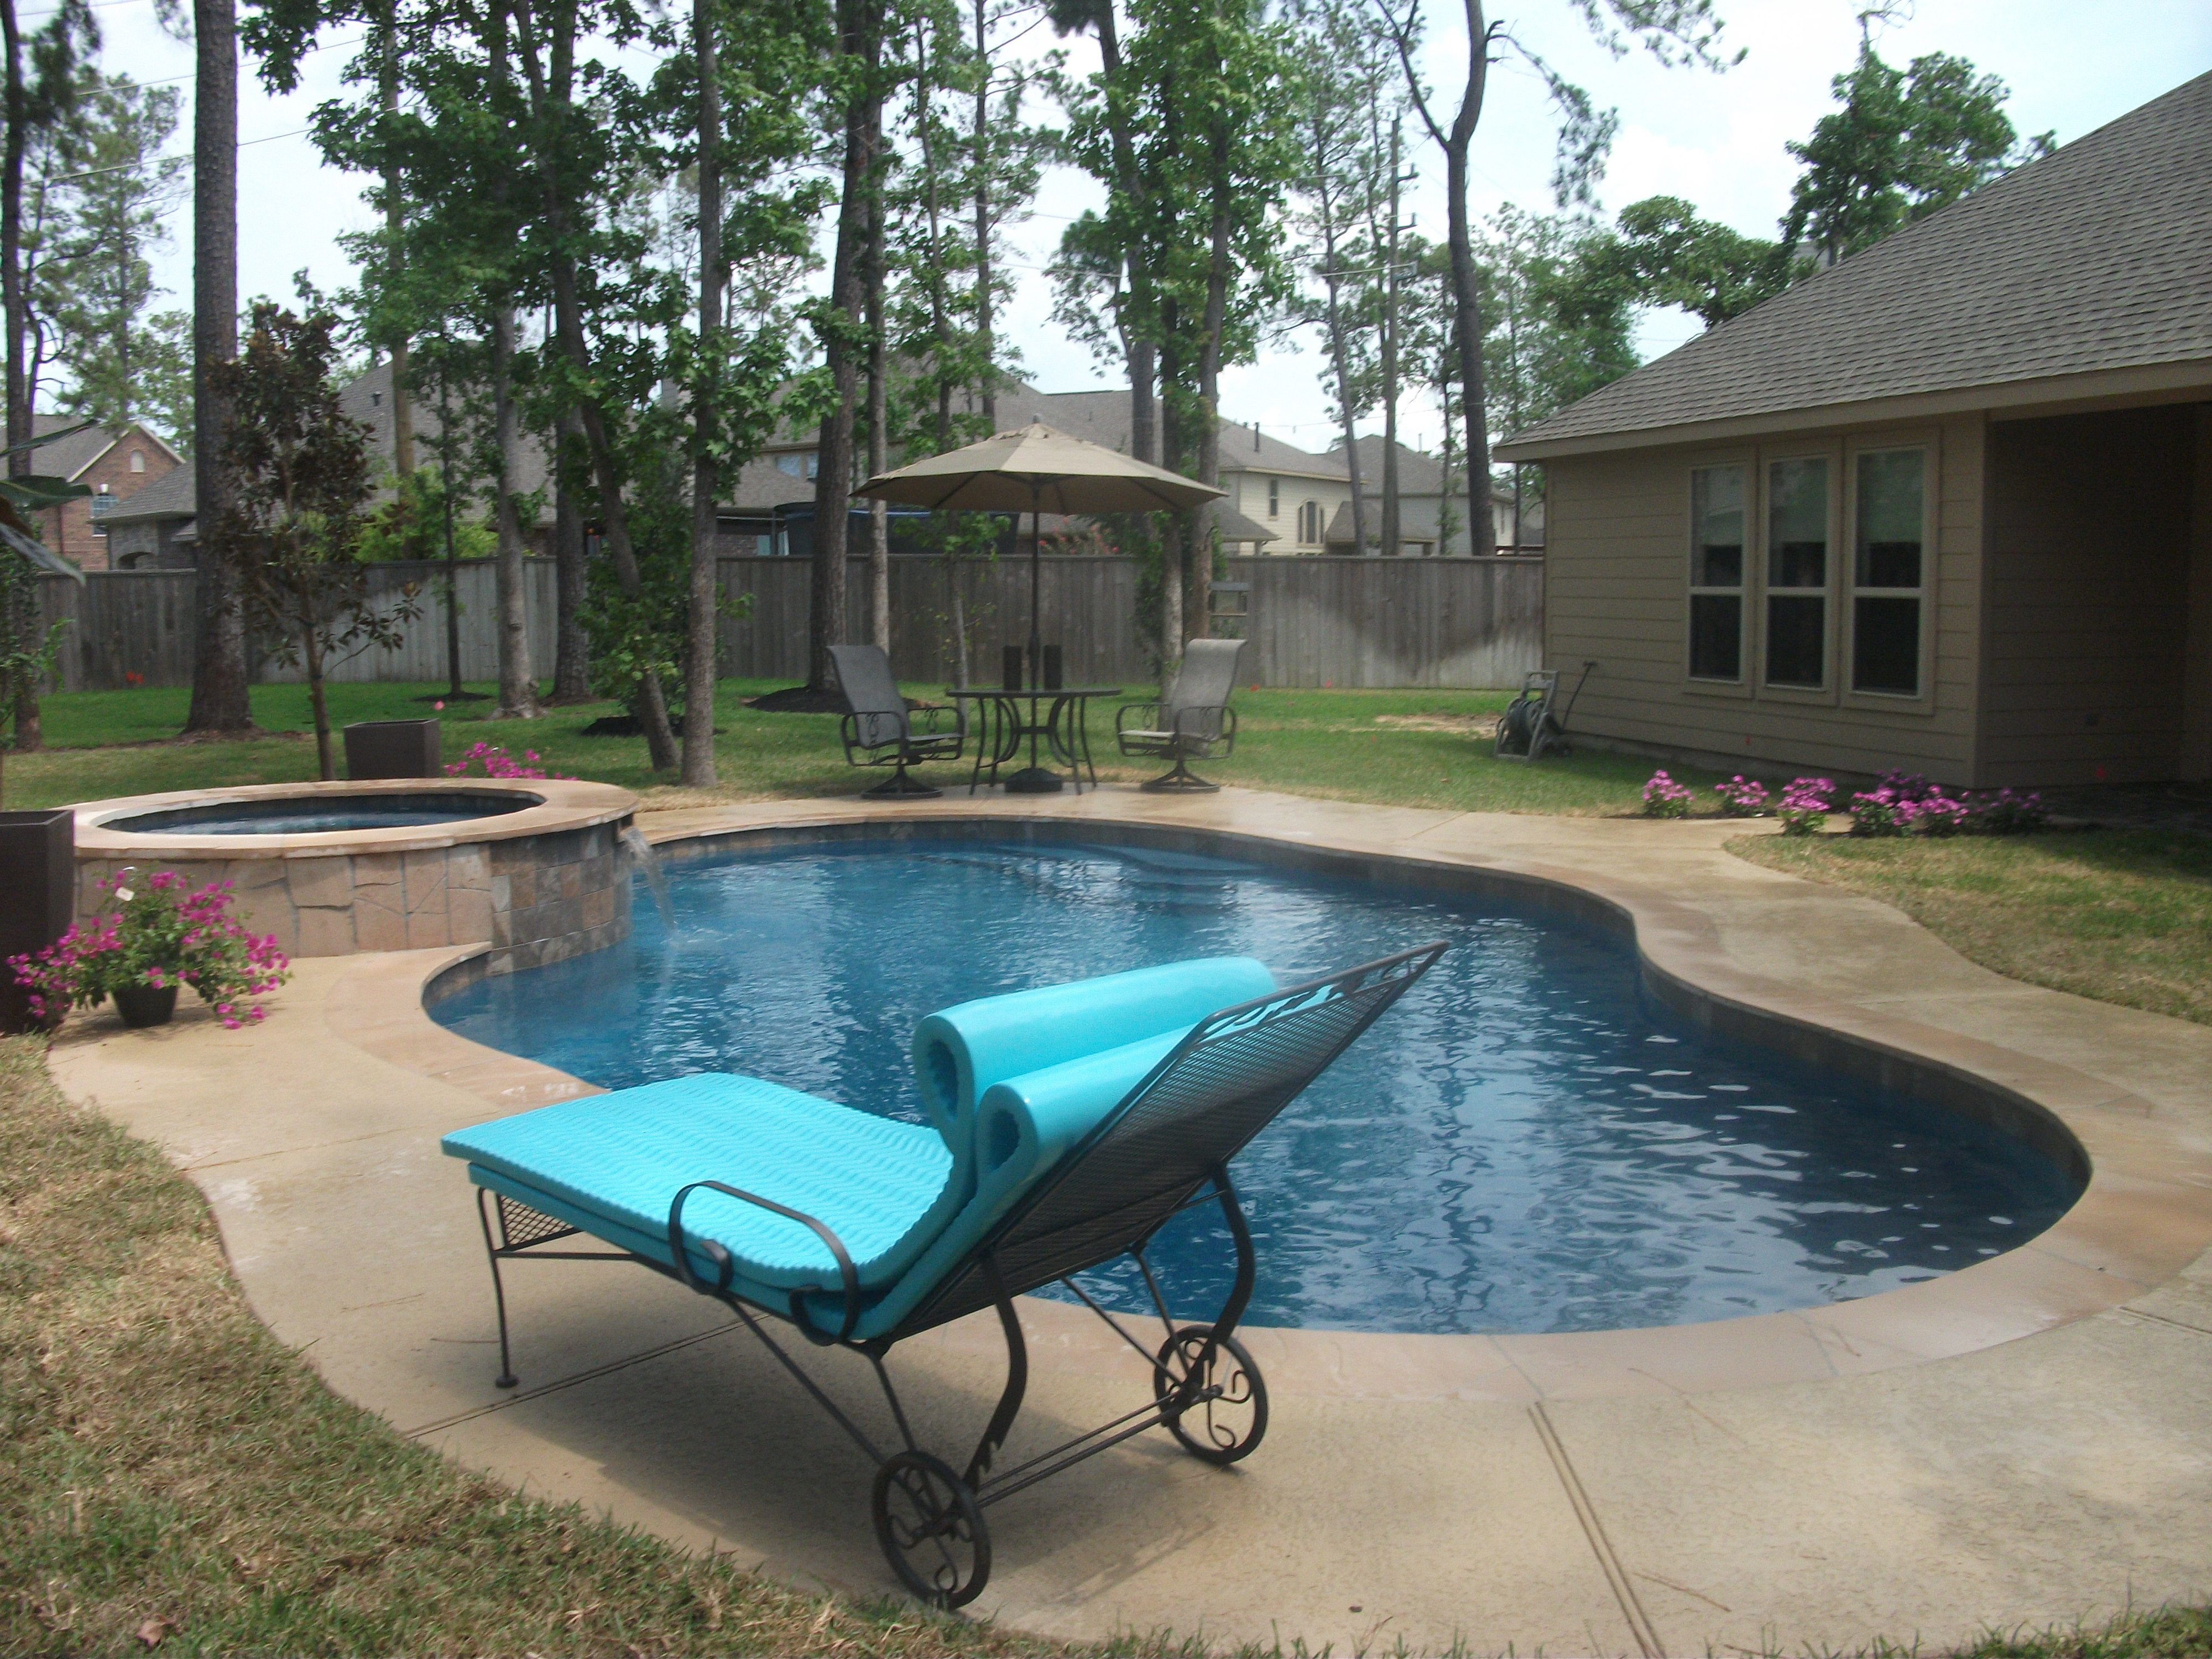 Simple And Elegant This Pool And Spa In The Woodlands Tx Outside